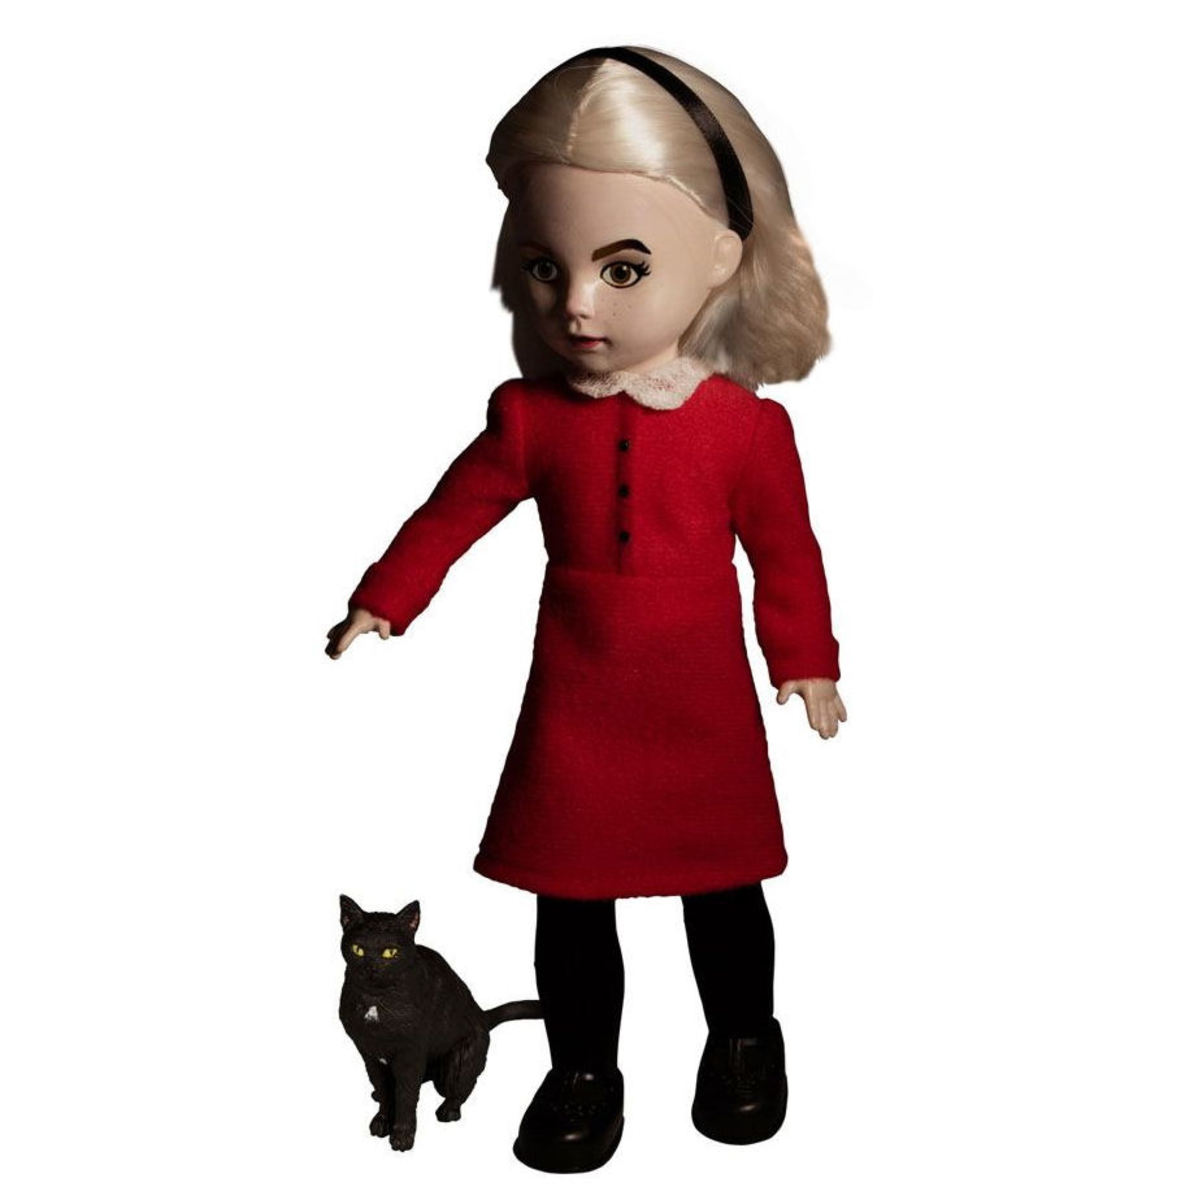 figurka filmová LIVING DEAD DOLLS Chilling Adventures of Sabrina Living Dead Dolls